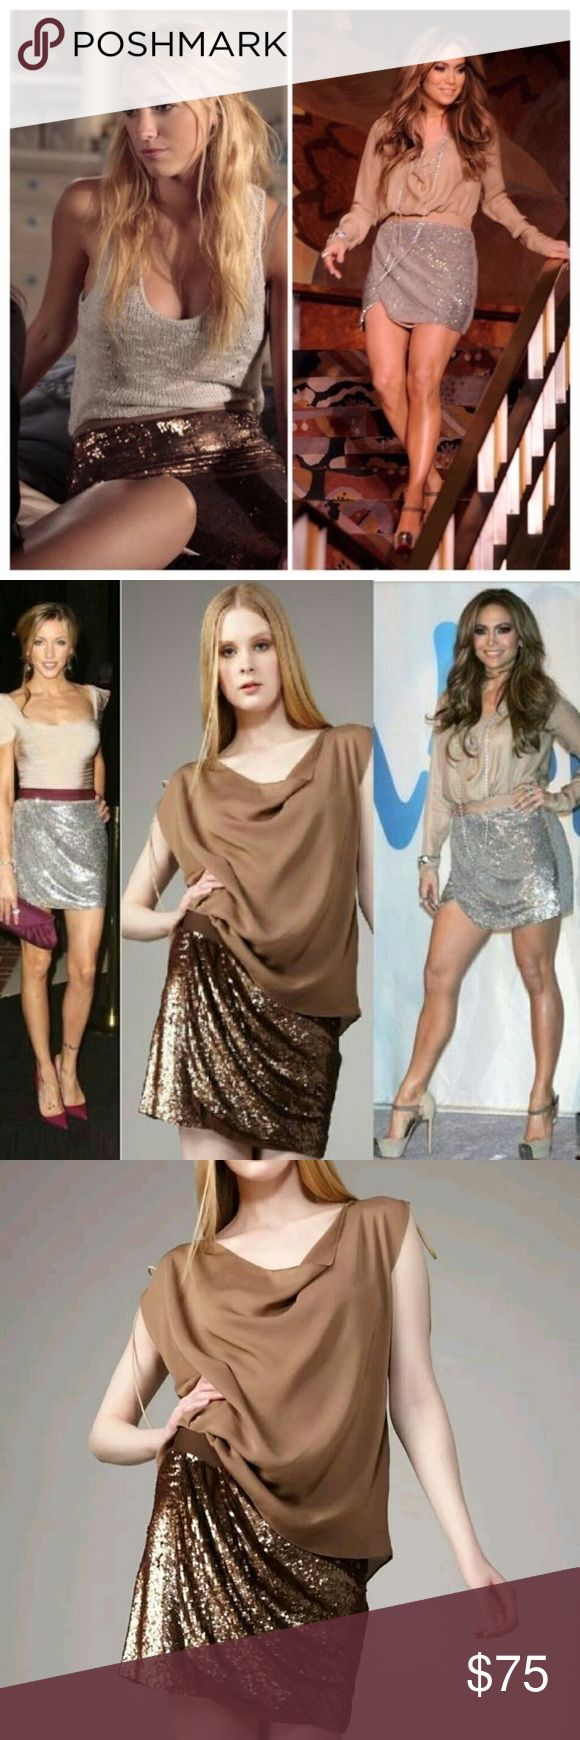 """Haute Hippie Silk Sequin Faux Wrap Mini Skirt NWOT Haute Hippie Faux Wrap Silk Sequin Mini Skirt in Copper. The Faux Wrap style adds sleek folds of sparkling sequins to this slim and sexy copper color mini skirt. A very flexible piece which you can pair with a blouse for a shimmering evening look or rock out with chunky knits. Worn by many celebrities, this is a must have addition to any wardrobe! It is in new condition with extra sequins attached. Fully lined with 100% Silk. Length 15"""" size…"""